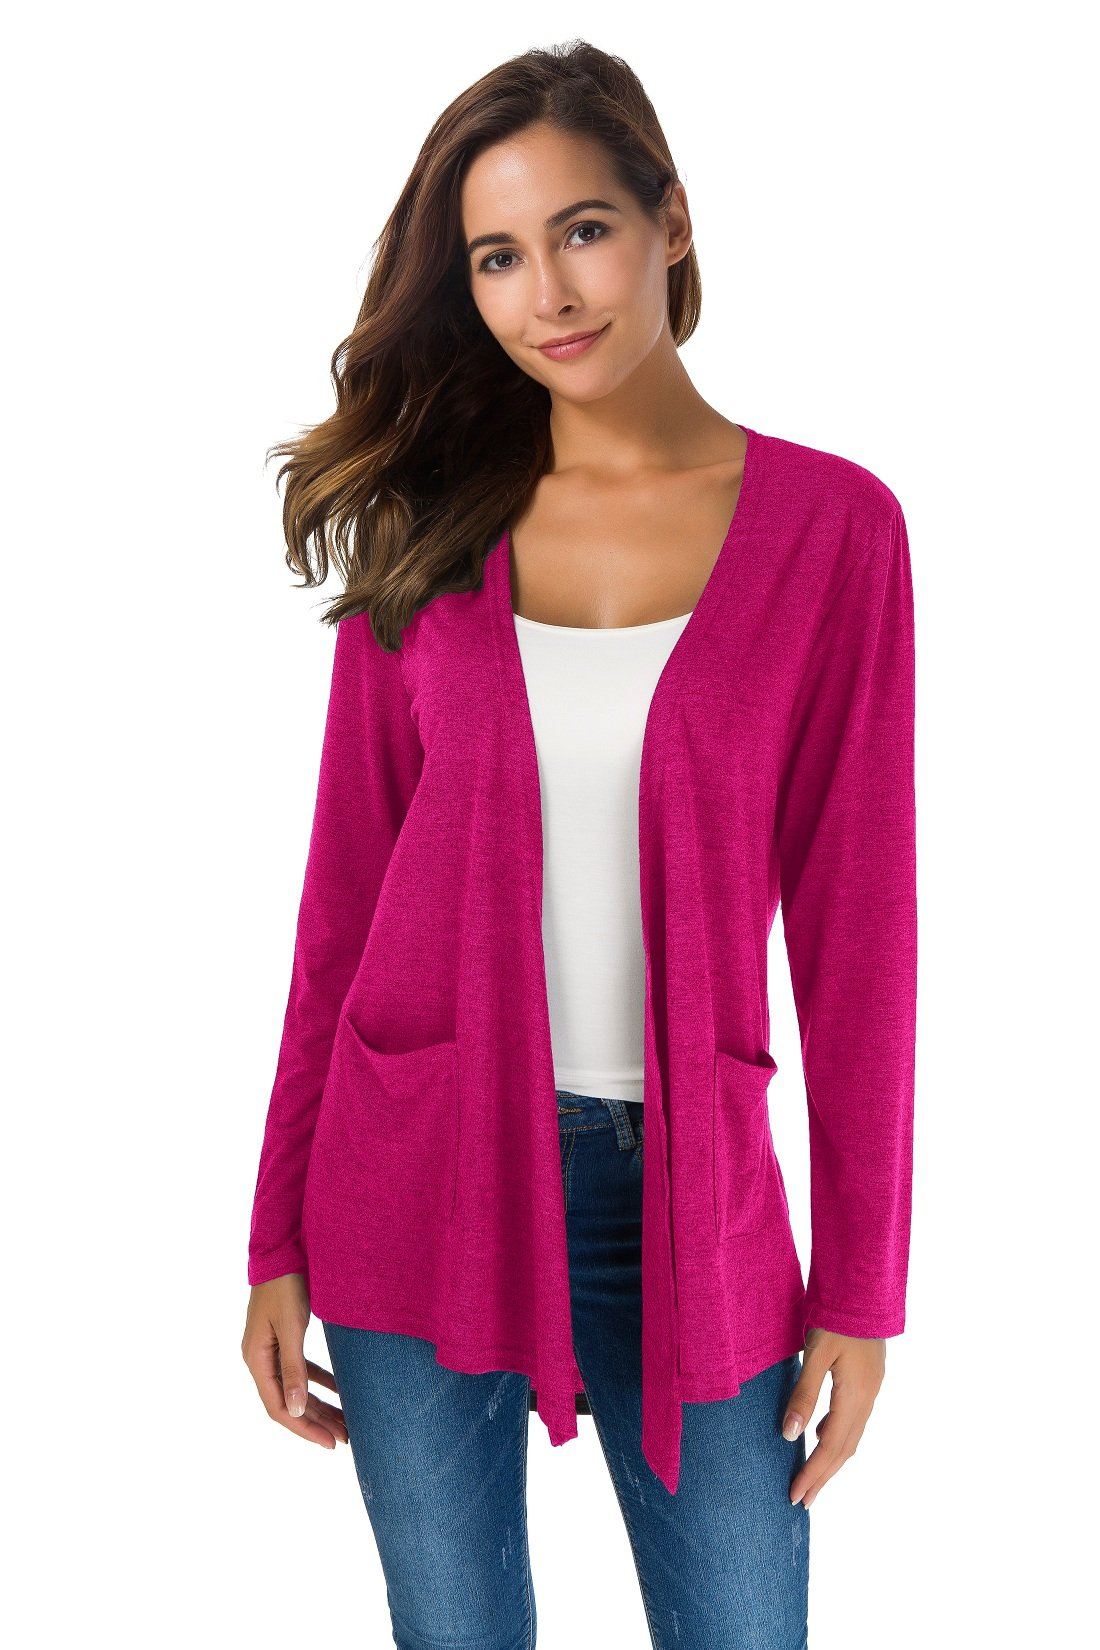 TownCat Women's Loose Casual Long Sleeved Open Front Breathable Cardigans with Pocket (Rosered1, L)